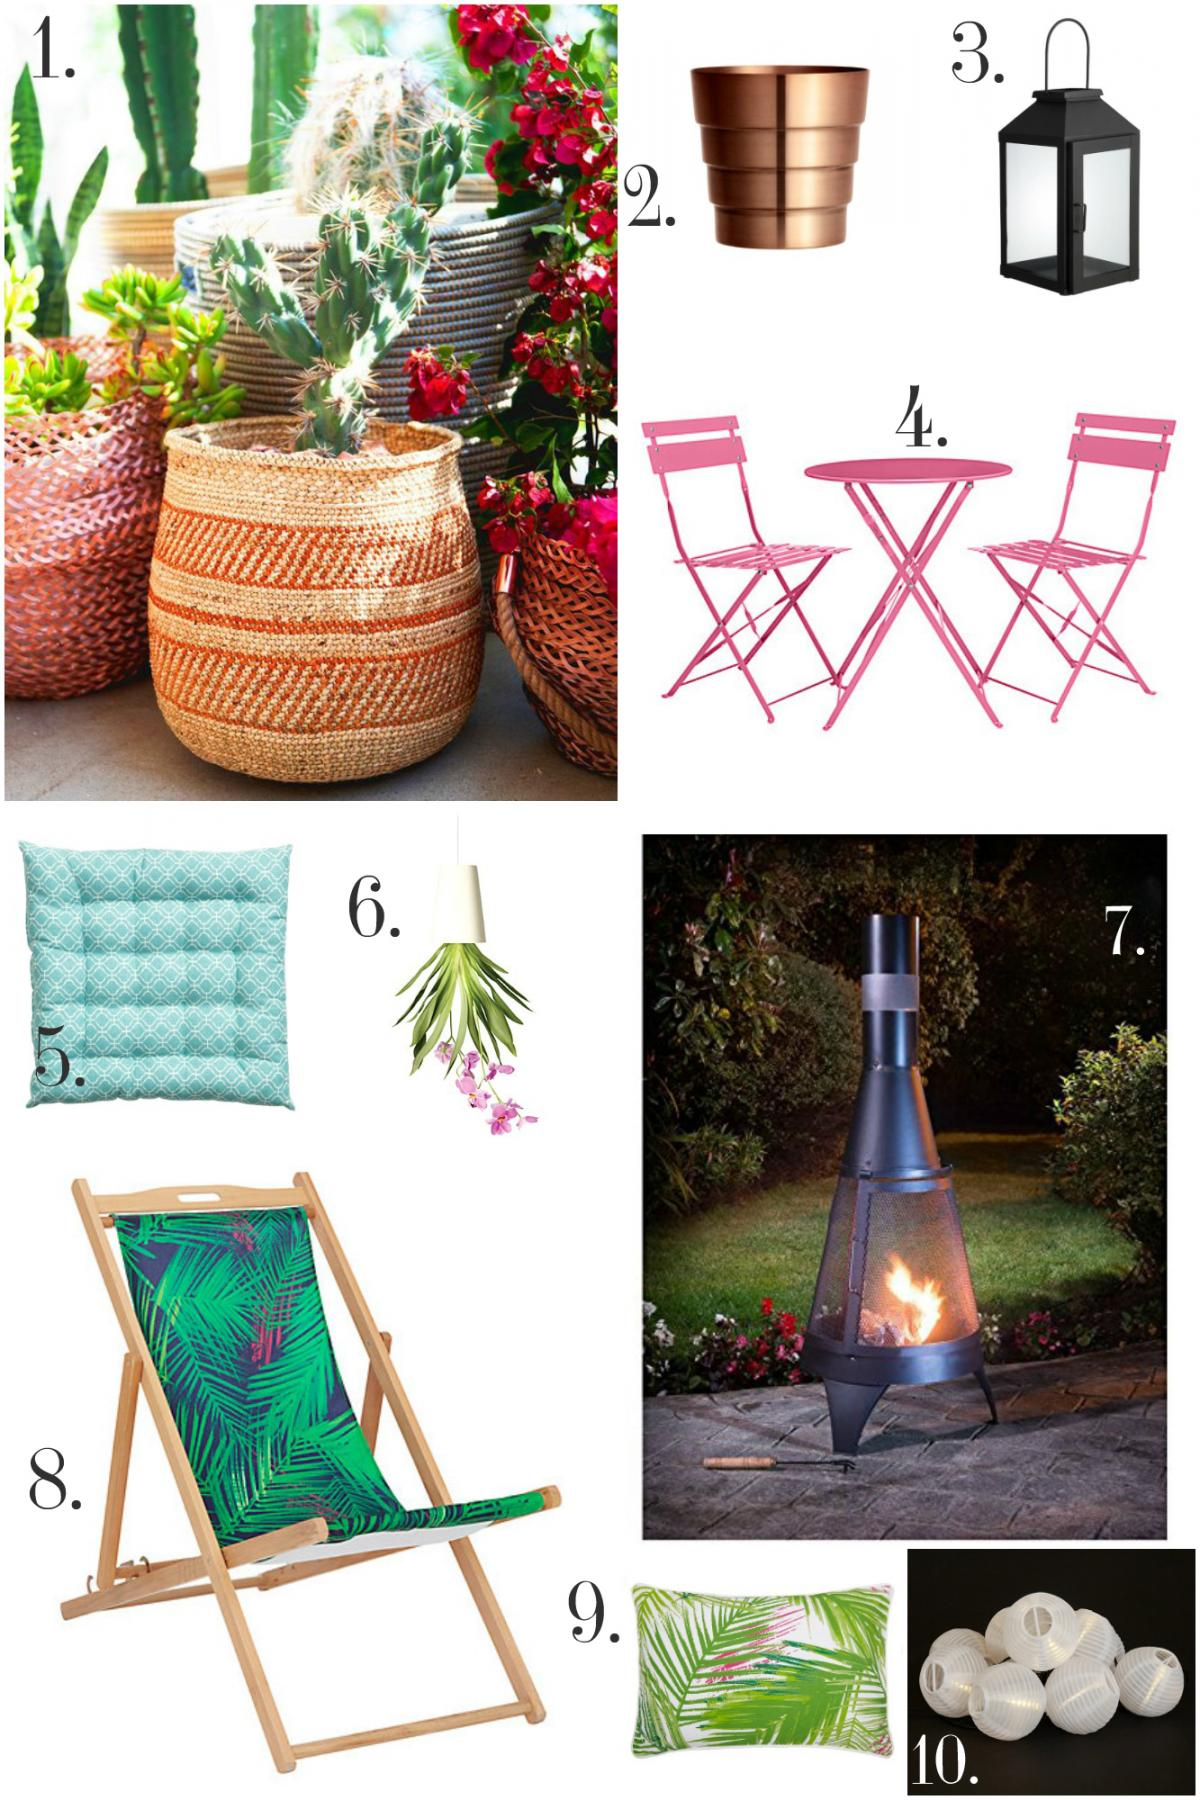 Home Trend- LA Cool Garden products